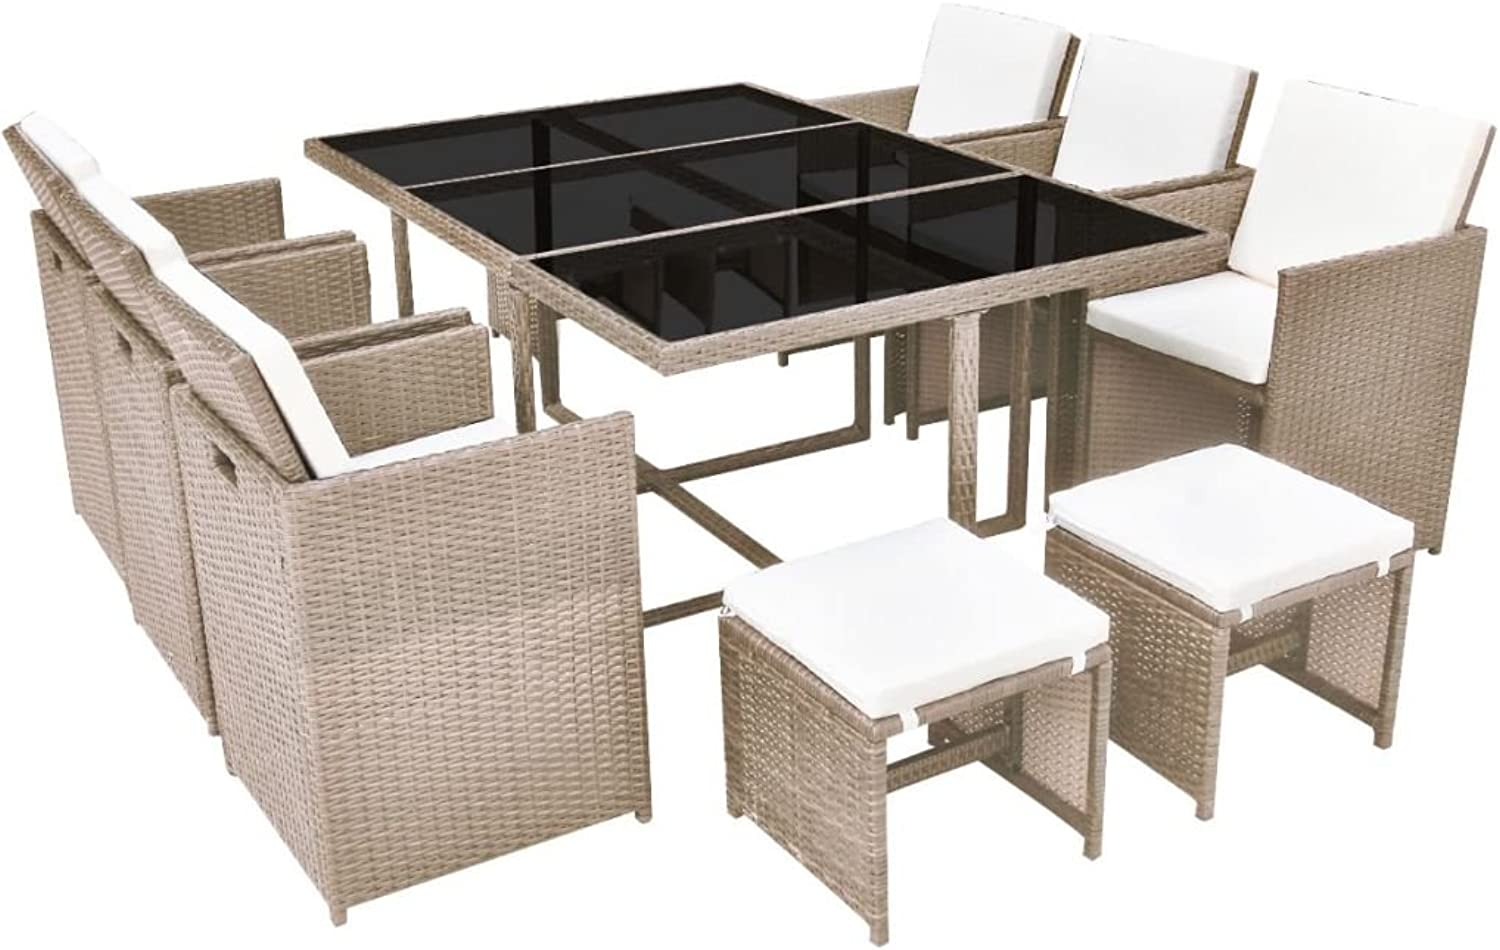 Festnight Outdoor Dining Set Graden Party Picnic Dining Table and Chairs with Removable Cushion for Family Gathering Home Decor Poly Rattan Grey